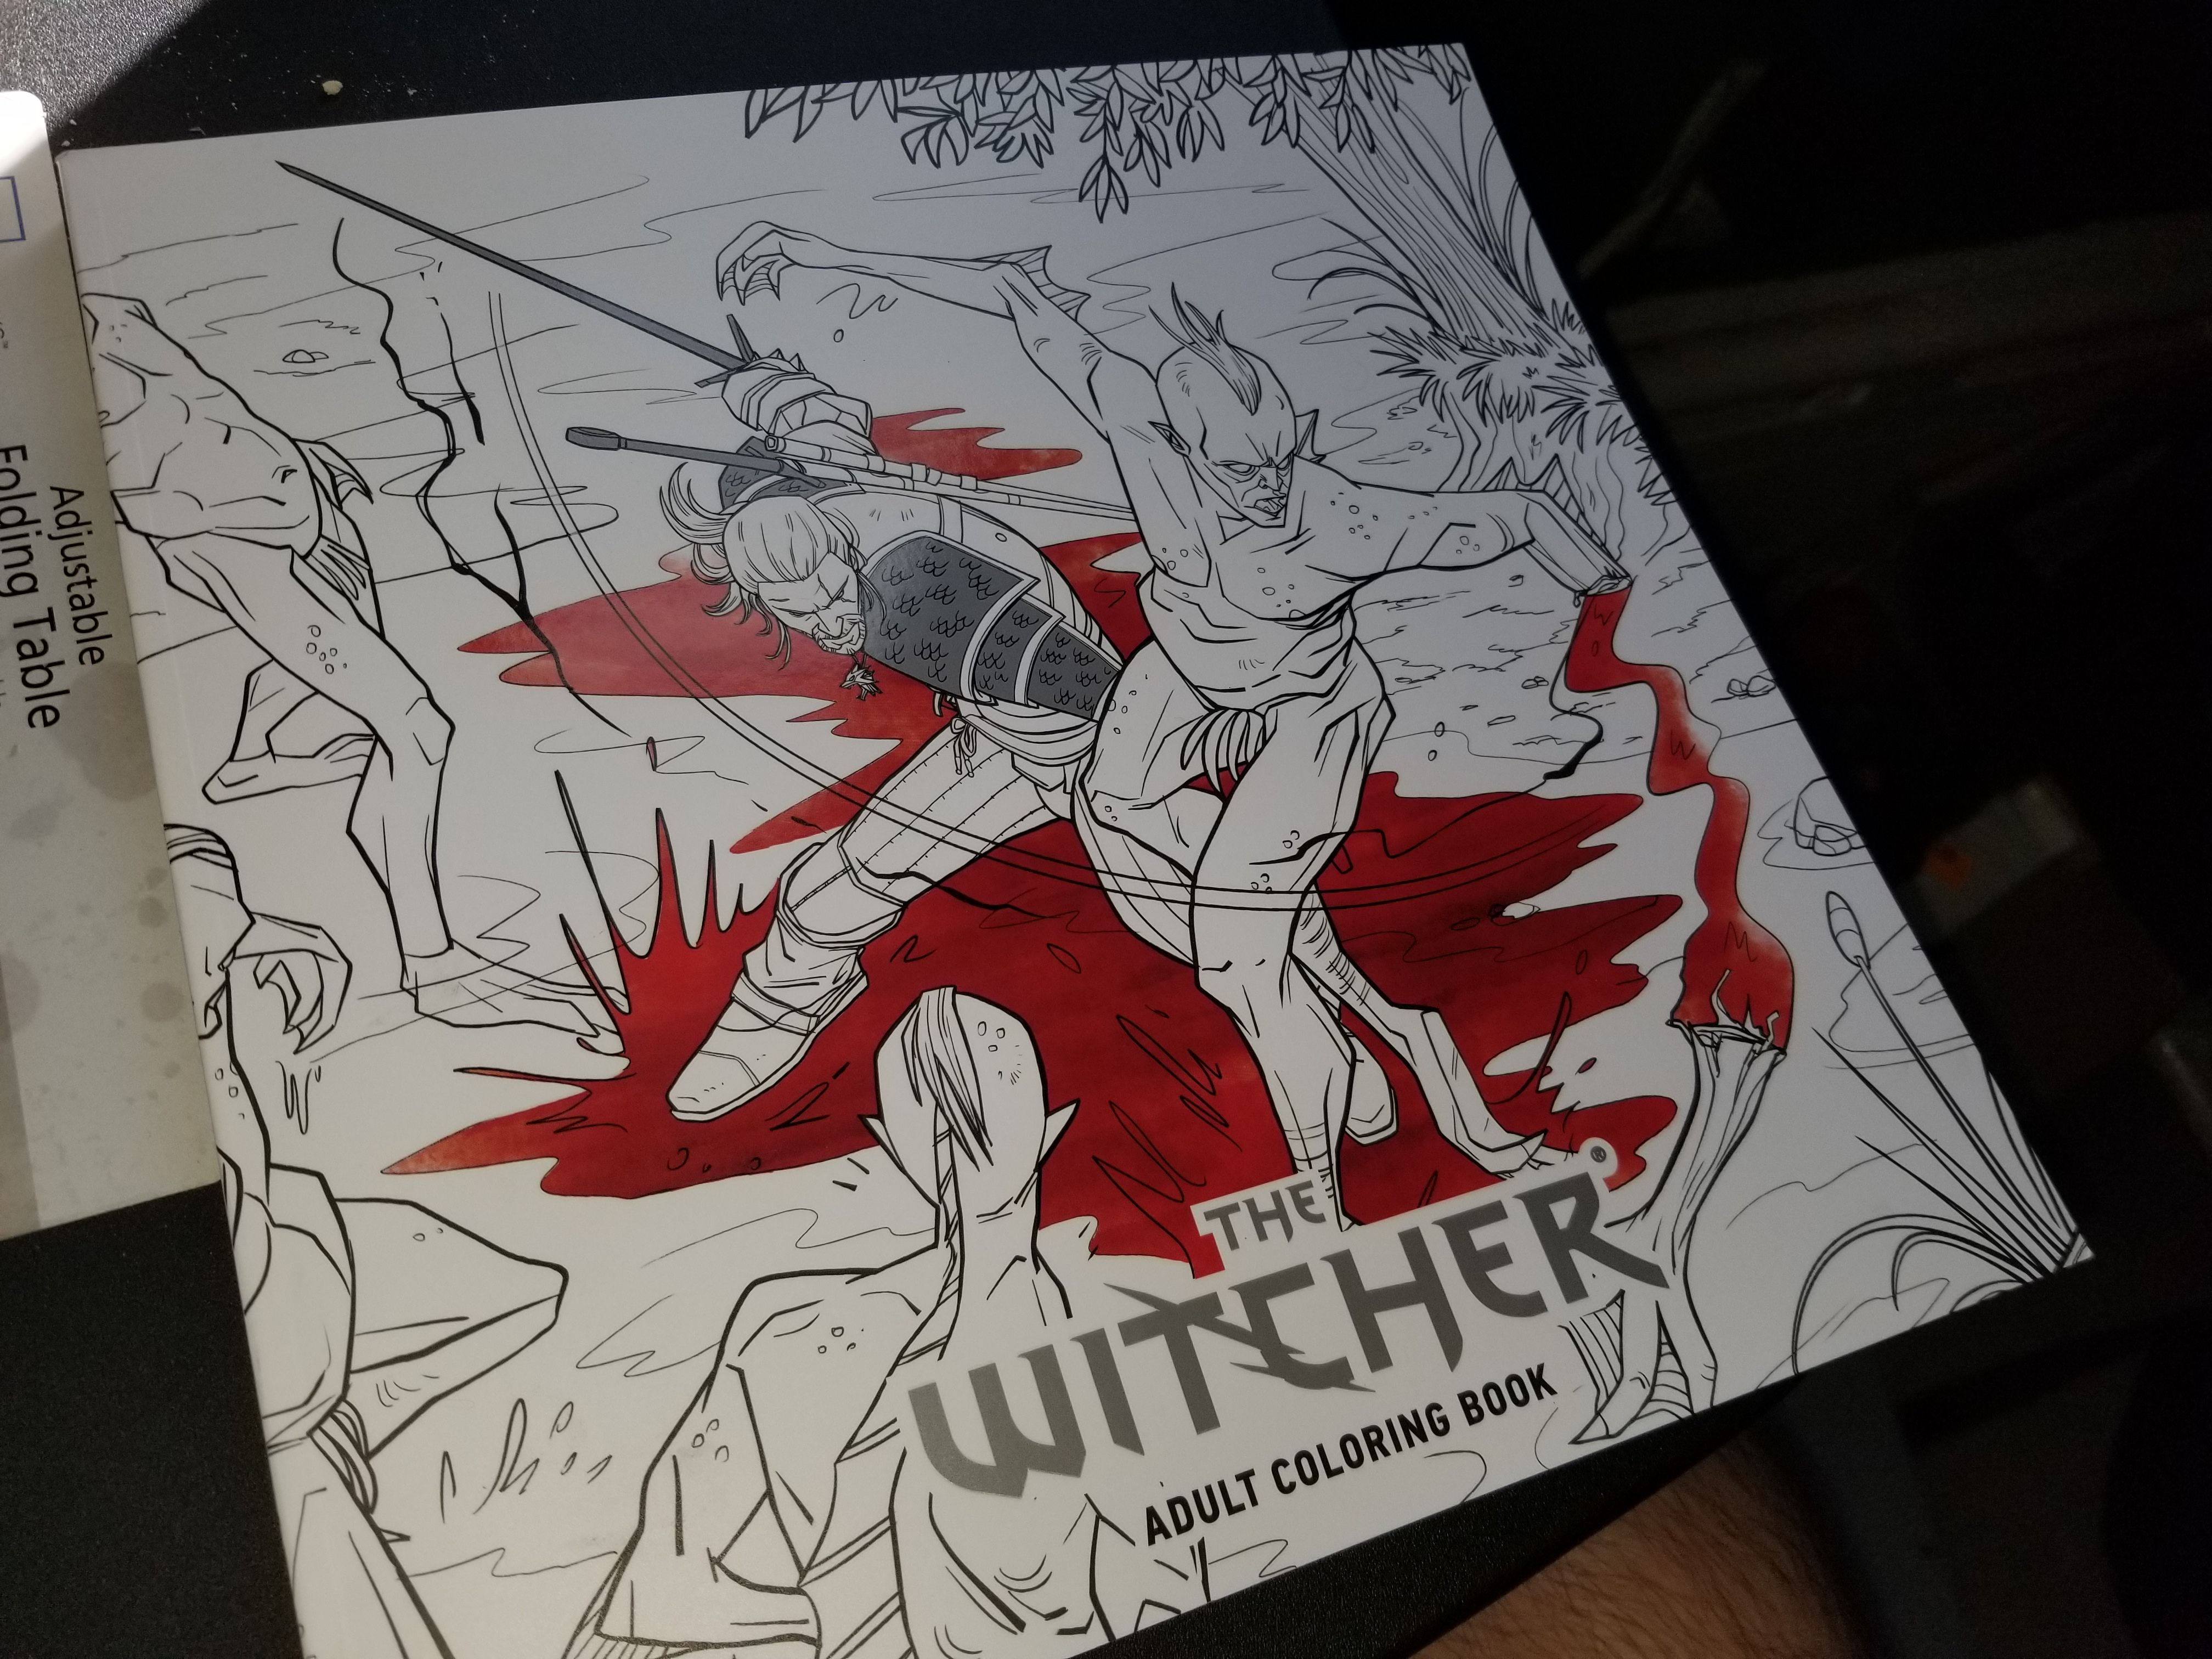 Our Own Copies Of The Witcher Adult Coloring Book Heres A Few Pictures To Show How Awesome It Is TheWitcher3 PS4 WILDHUNT PS4share Games Gaming